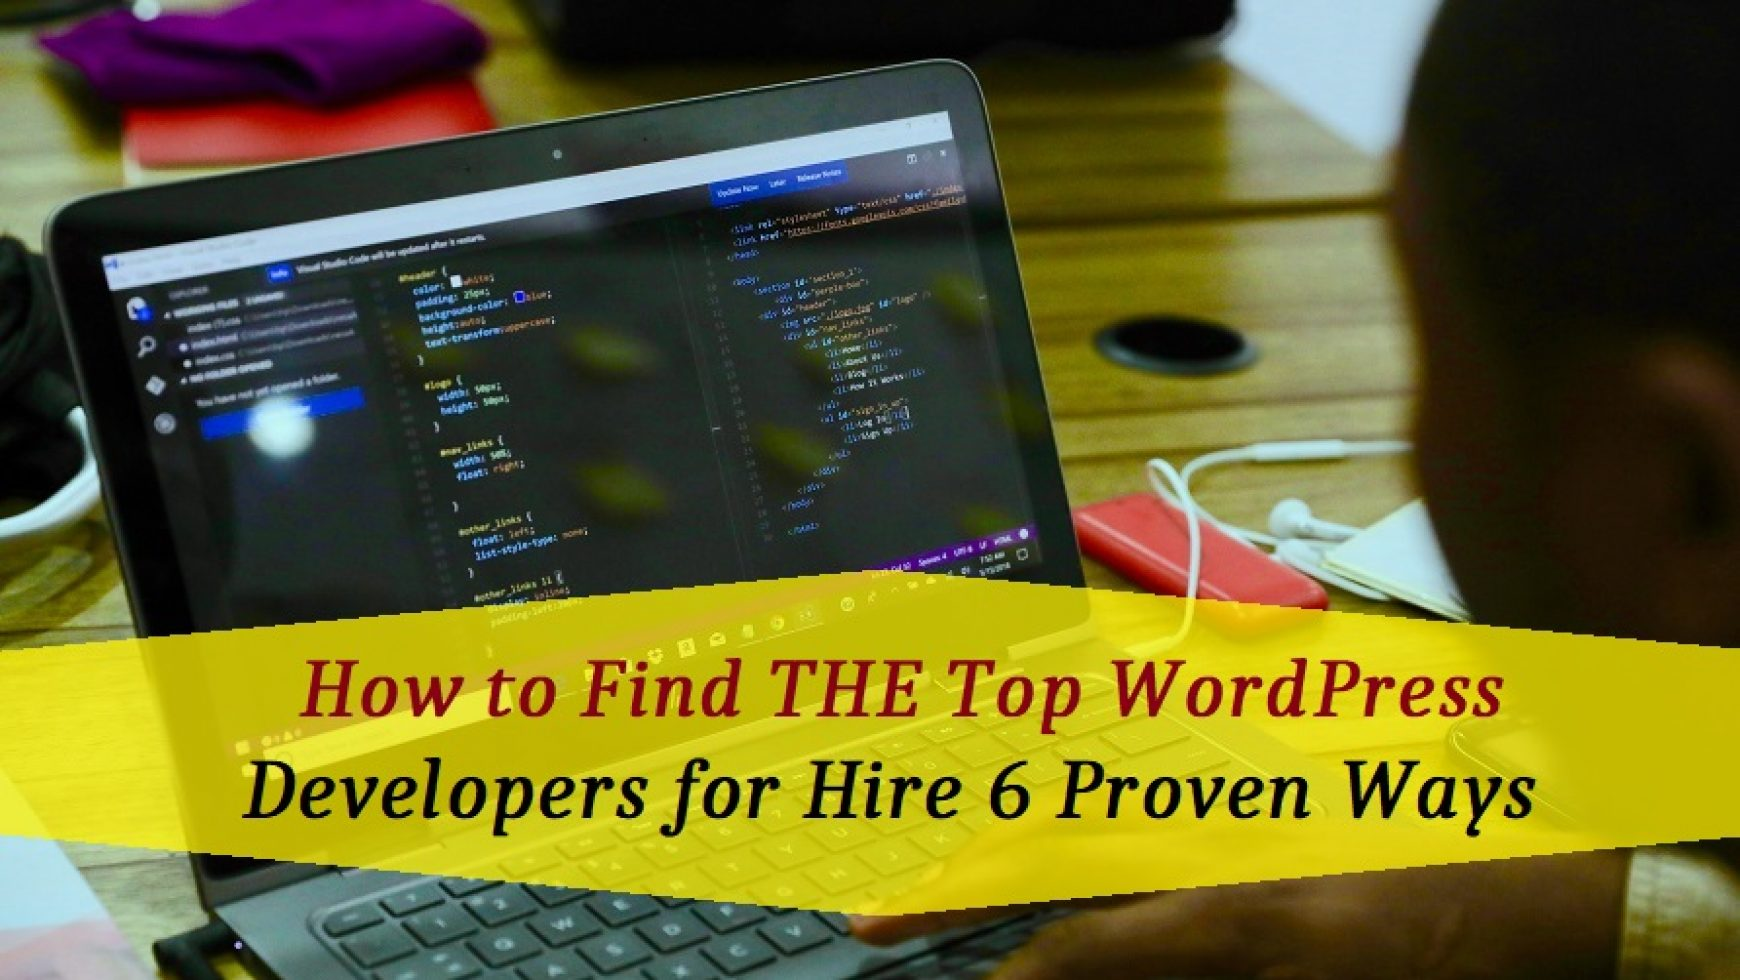 How To Find The Top WordPress Developers For Hire: 6 Proven Ways